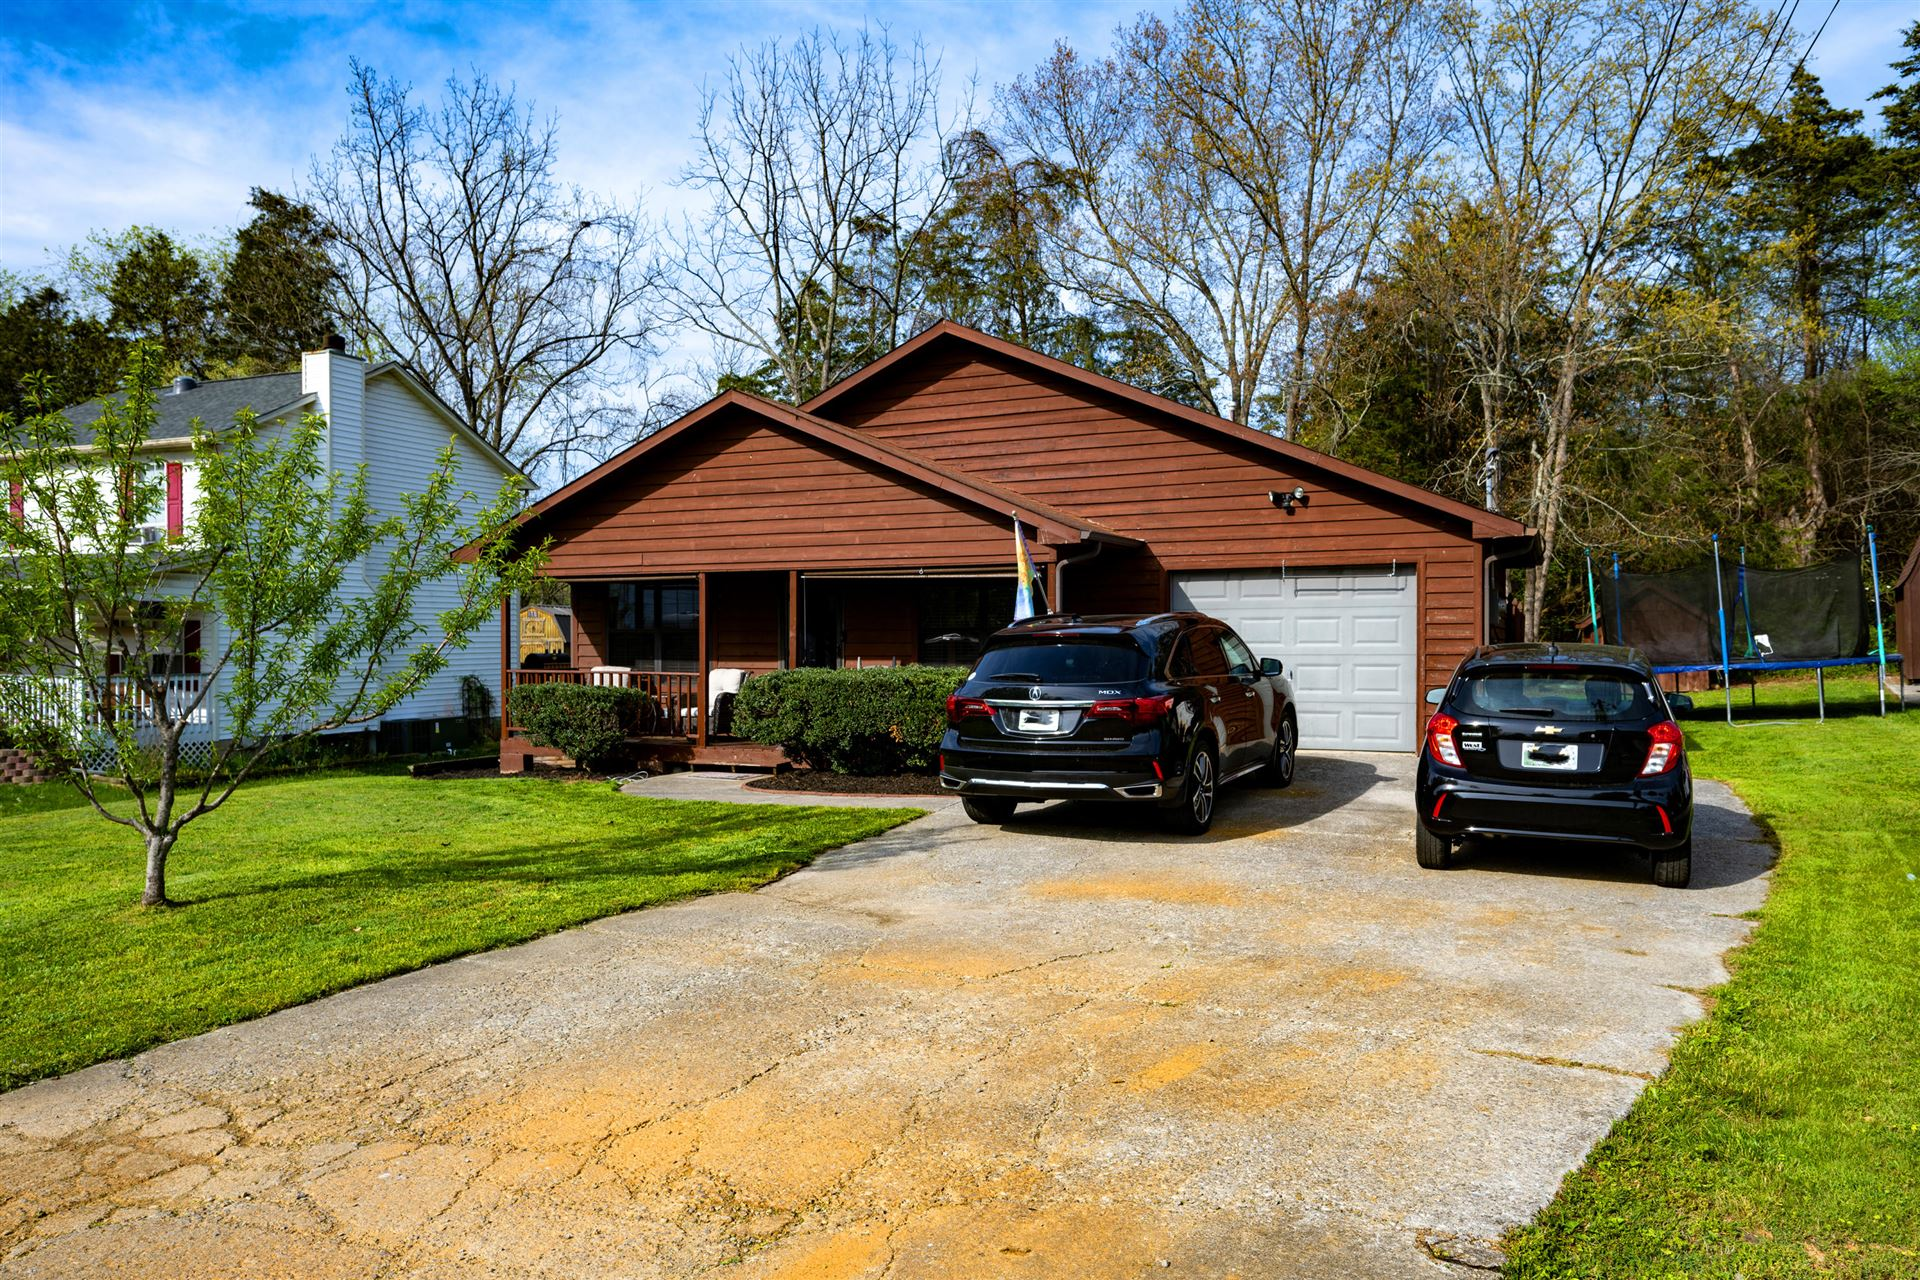 Photo of 117 Pheasant Rd, Clinton, TN 37716 (MLS # 1149542)